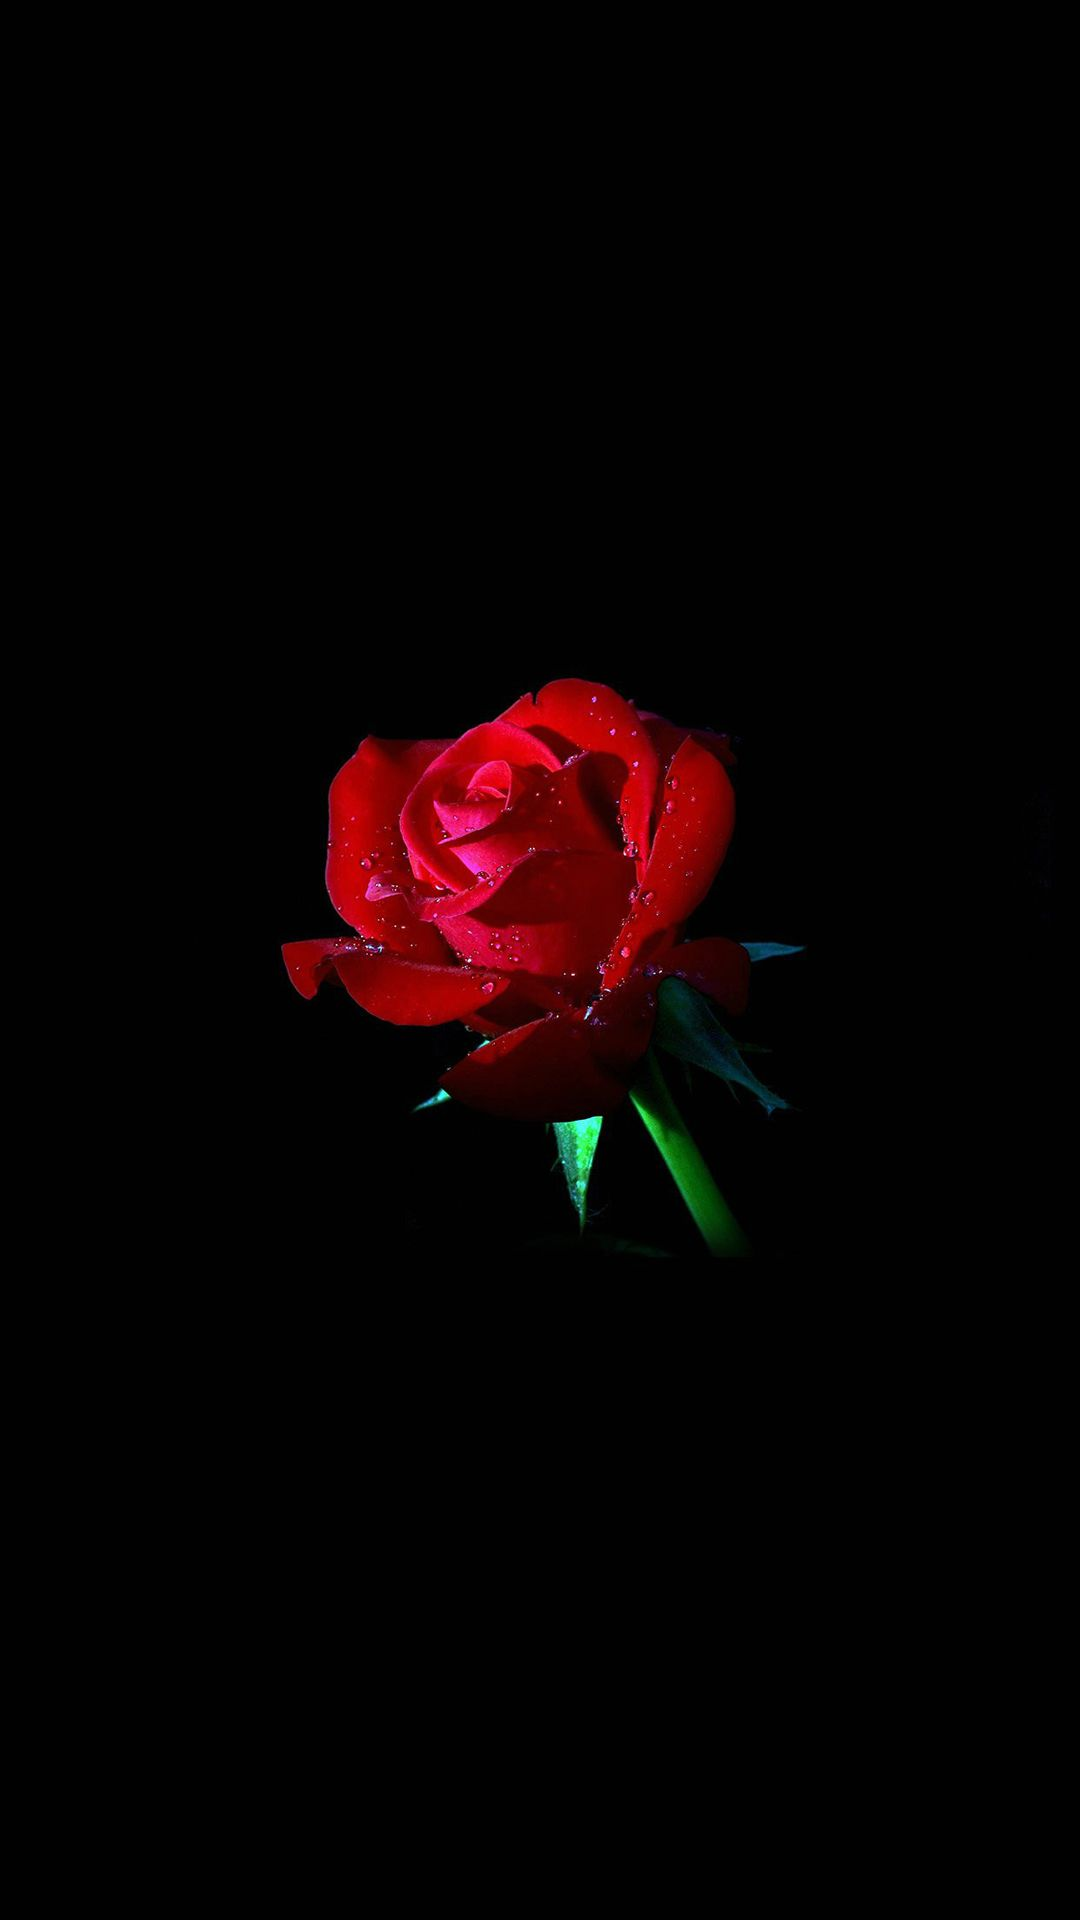 Elegant Dew Rose In Dark Iphone 6 Wallpaper Download Iphone Wallpapers Ipad Wallpapers One Stop Download Dark Wallpaper Rose Wallpaper Flower Wallpaper